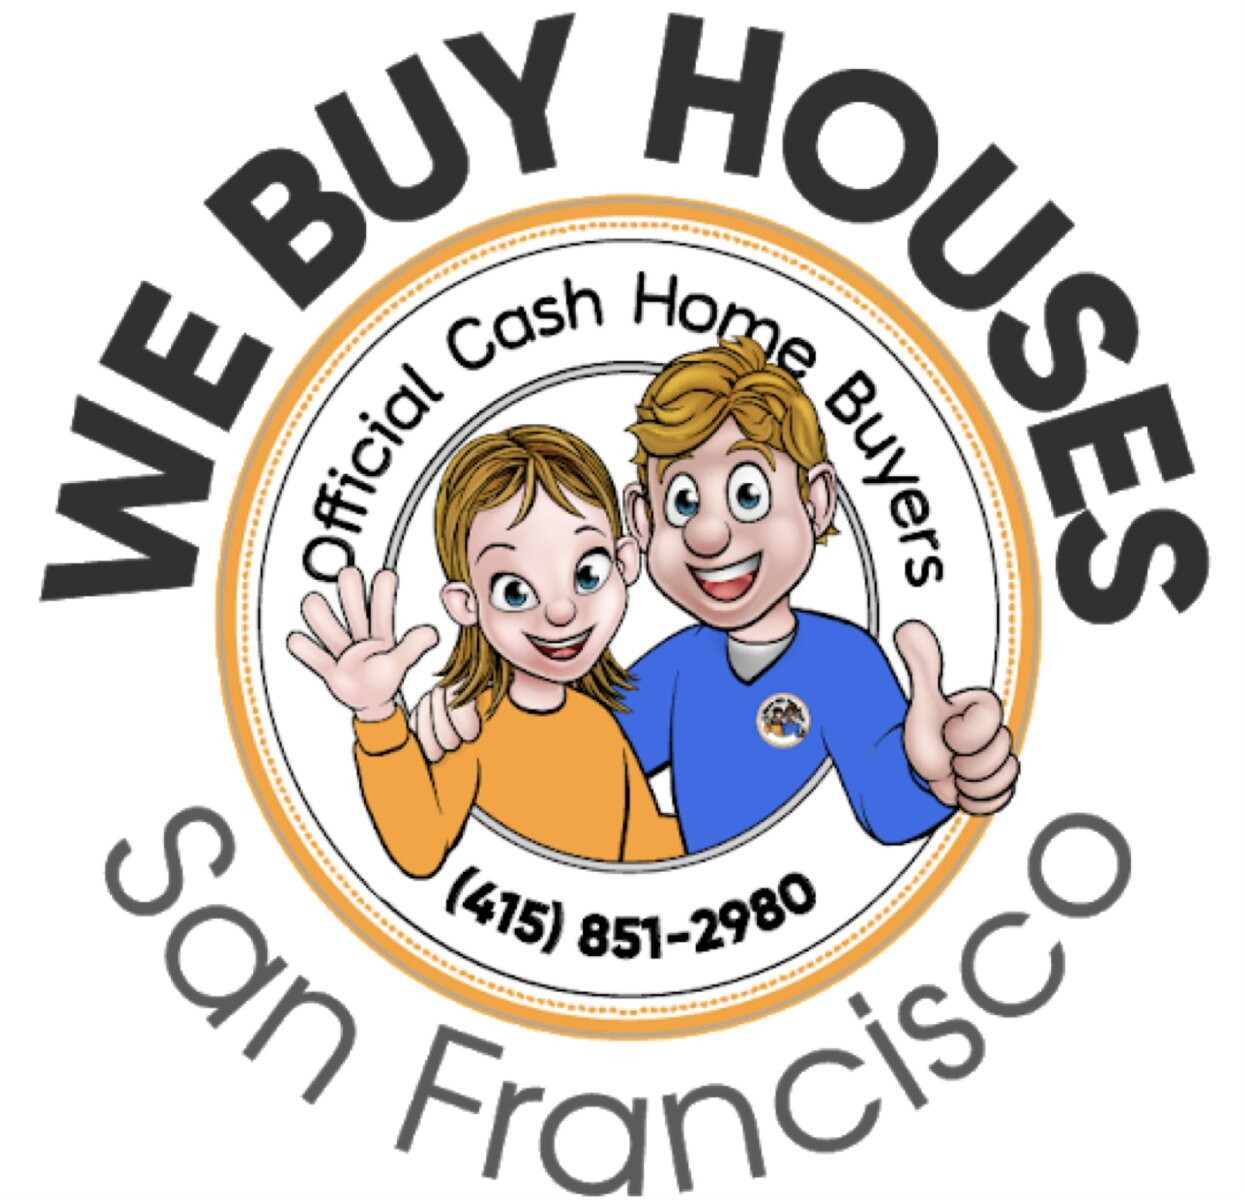 We Buy Houses San Francisco logo